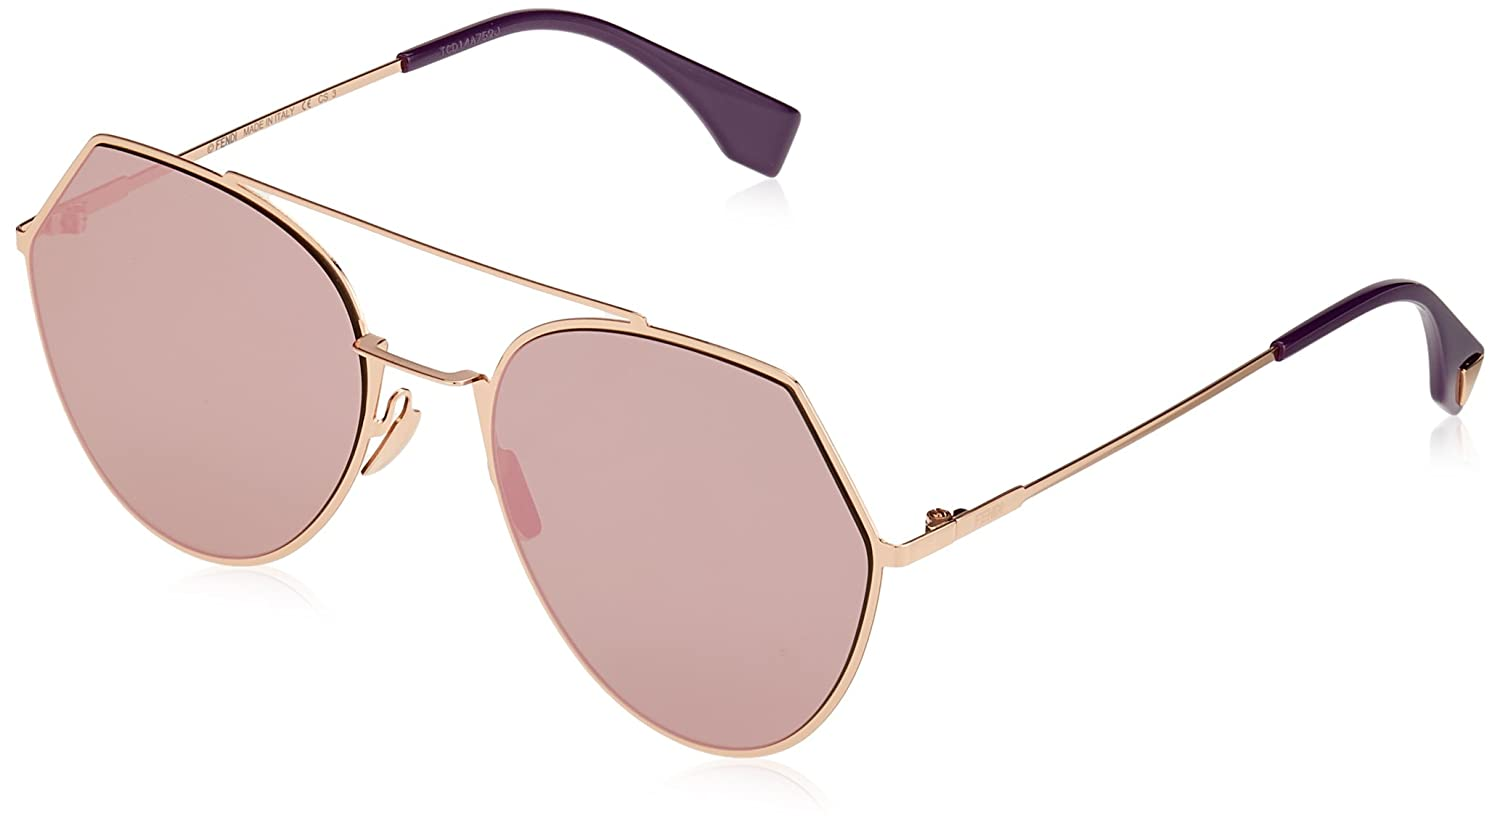 Fendi FF0194S DDB Gold Copper 0194S Round Sunglasses Lens Category 3 Lens  Mirro